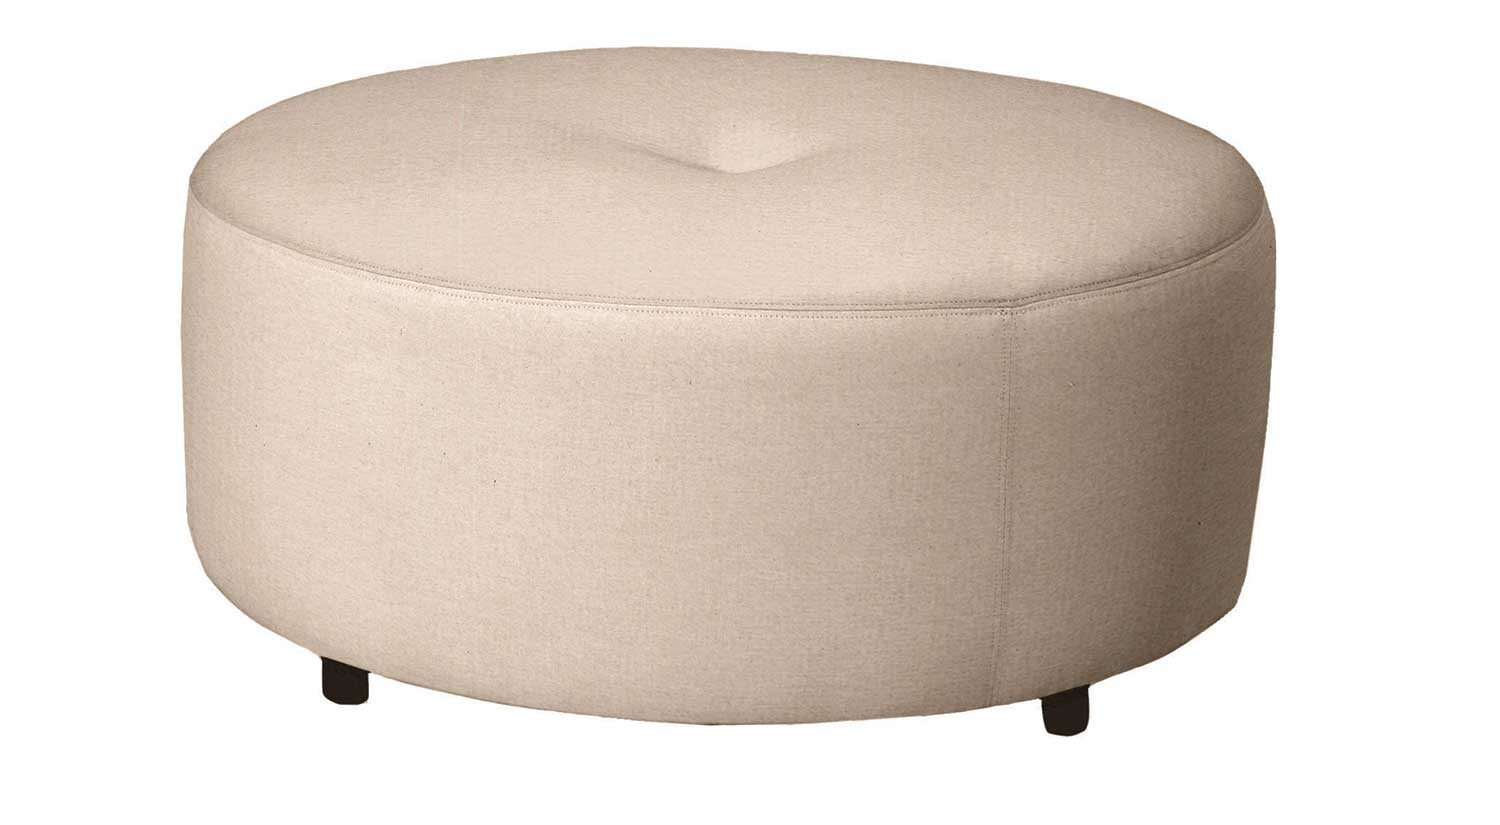 outdoor pouf chair circle furniture pouf ottoman ottomans boston circle pouf design a sacco. Black Bedroom Furniture Sets. Home Design Ideas